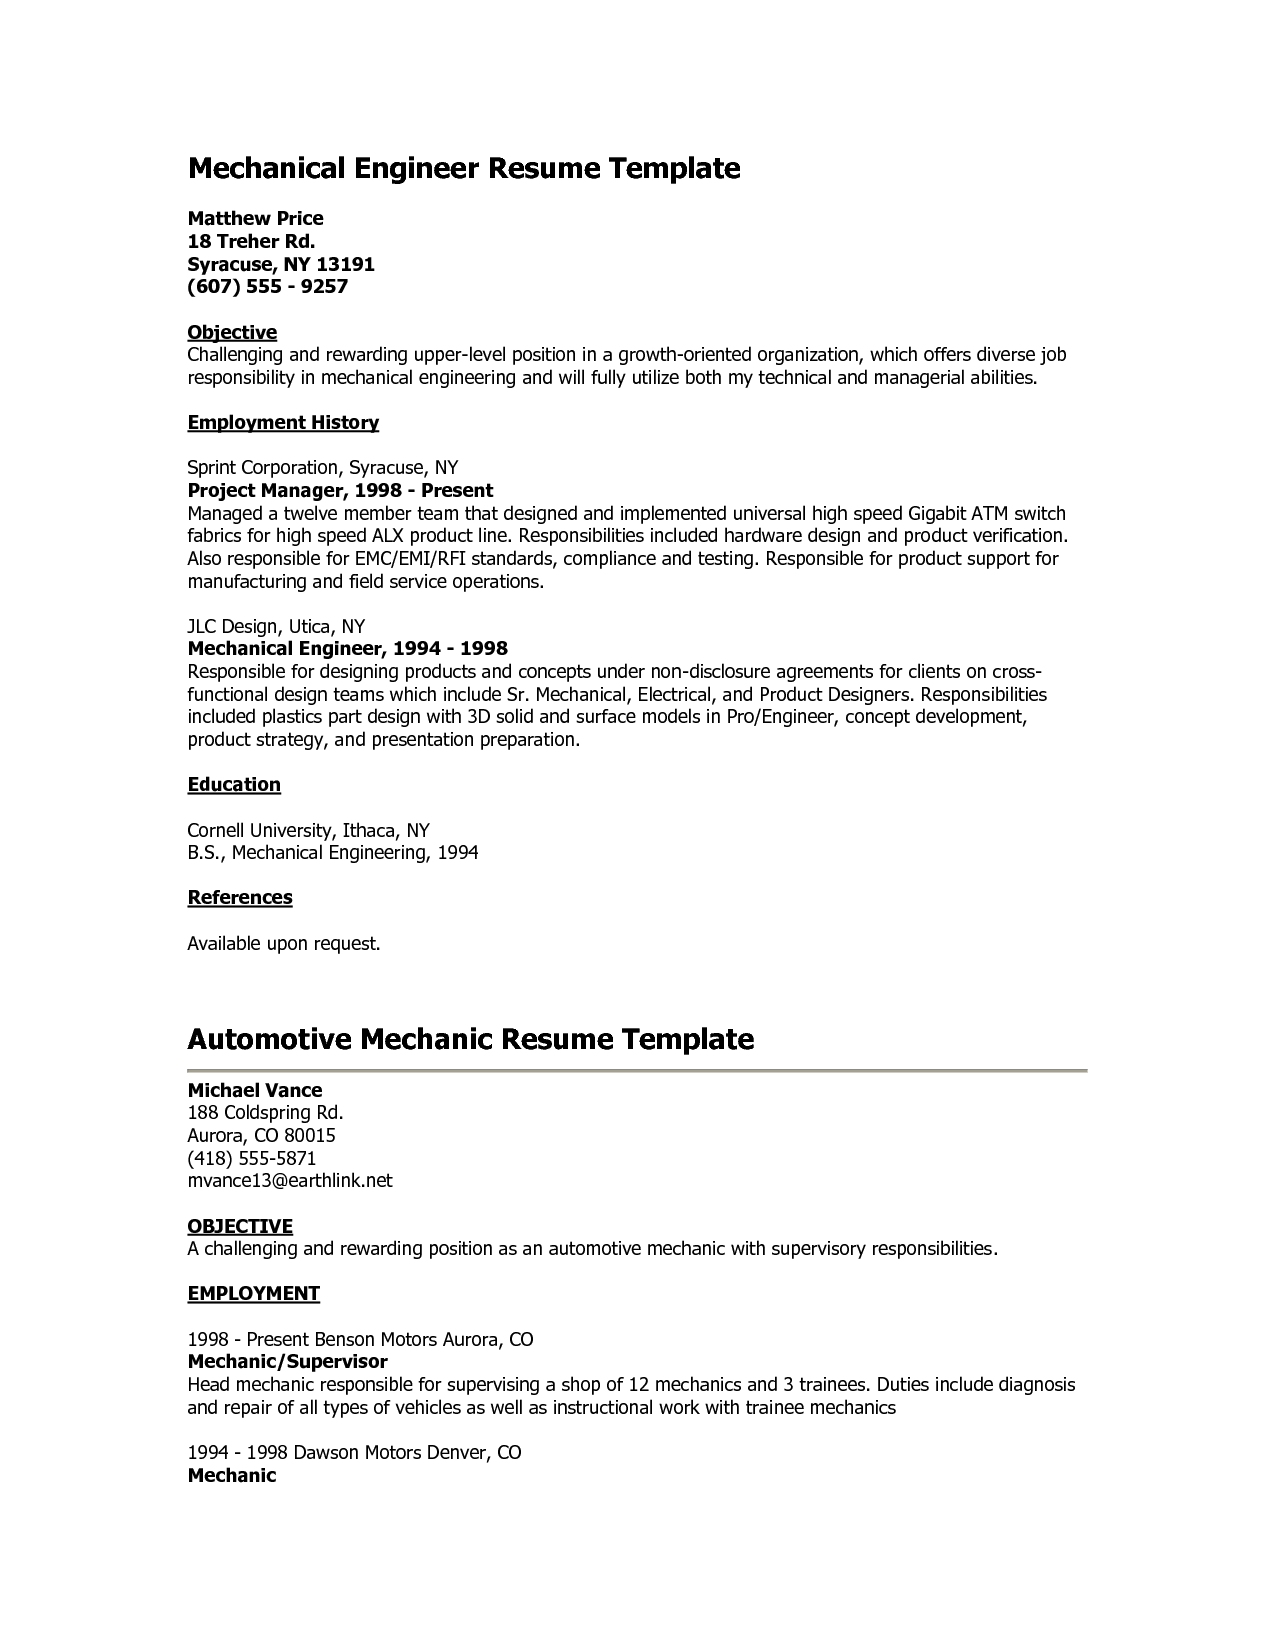 Entry Level Mechanical Engineering Resume Best Bank Teller Resume With No Experience  Httpwww.jobresume.website .